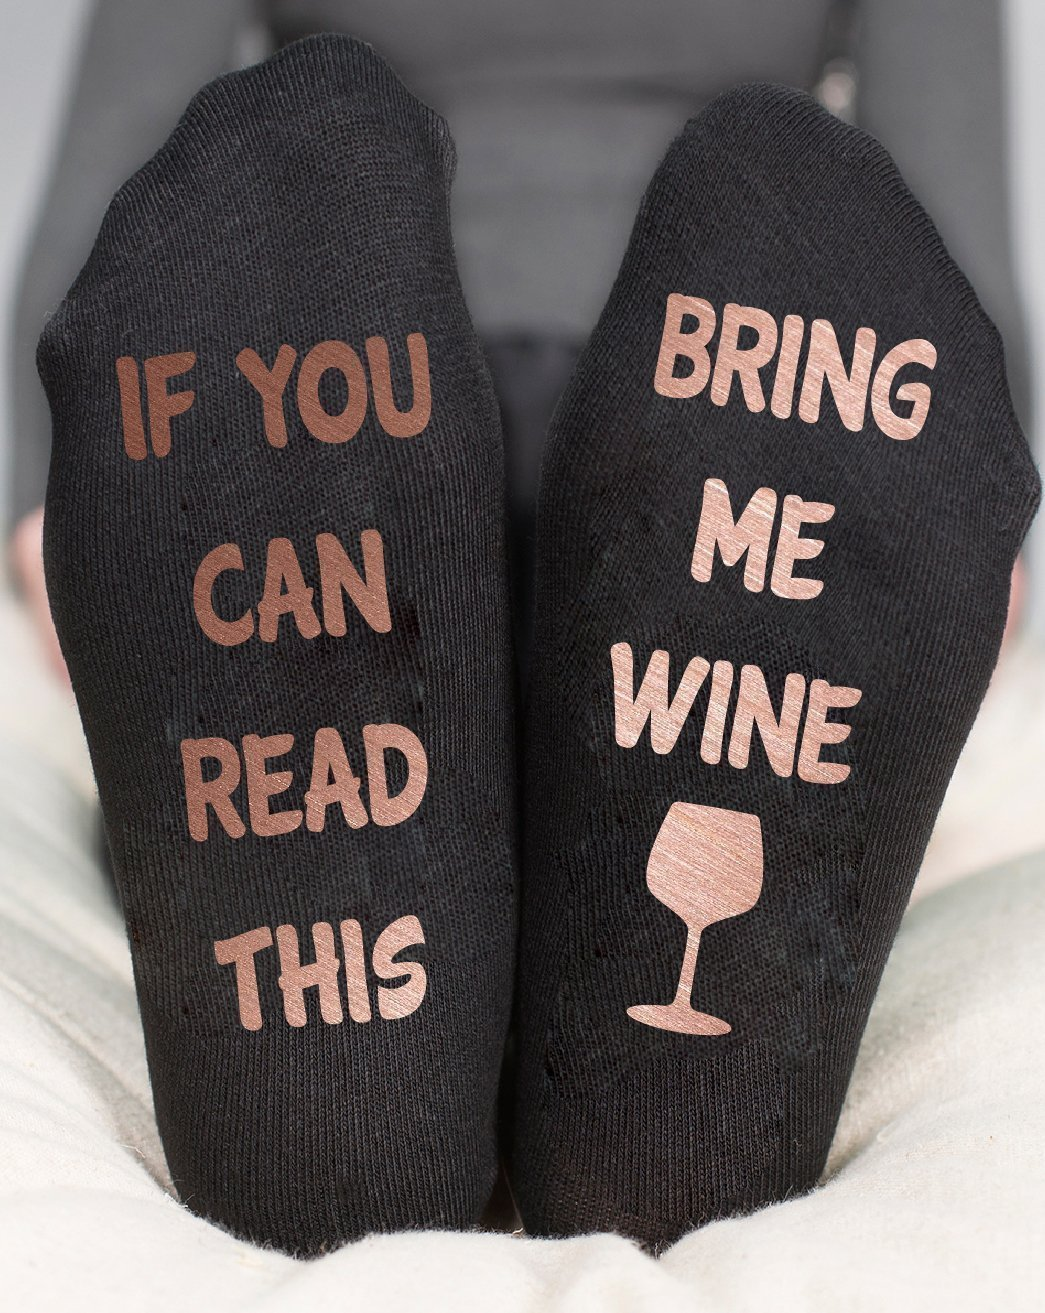 If You Can Read This Bring Me Wine Socks Funny Birthday Gift